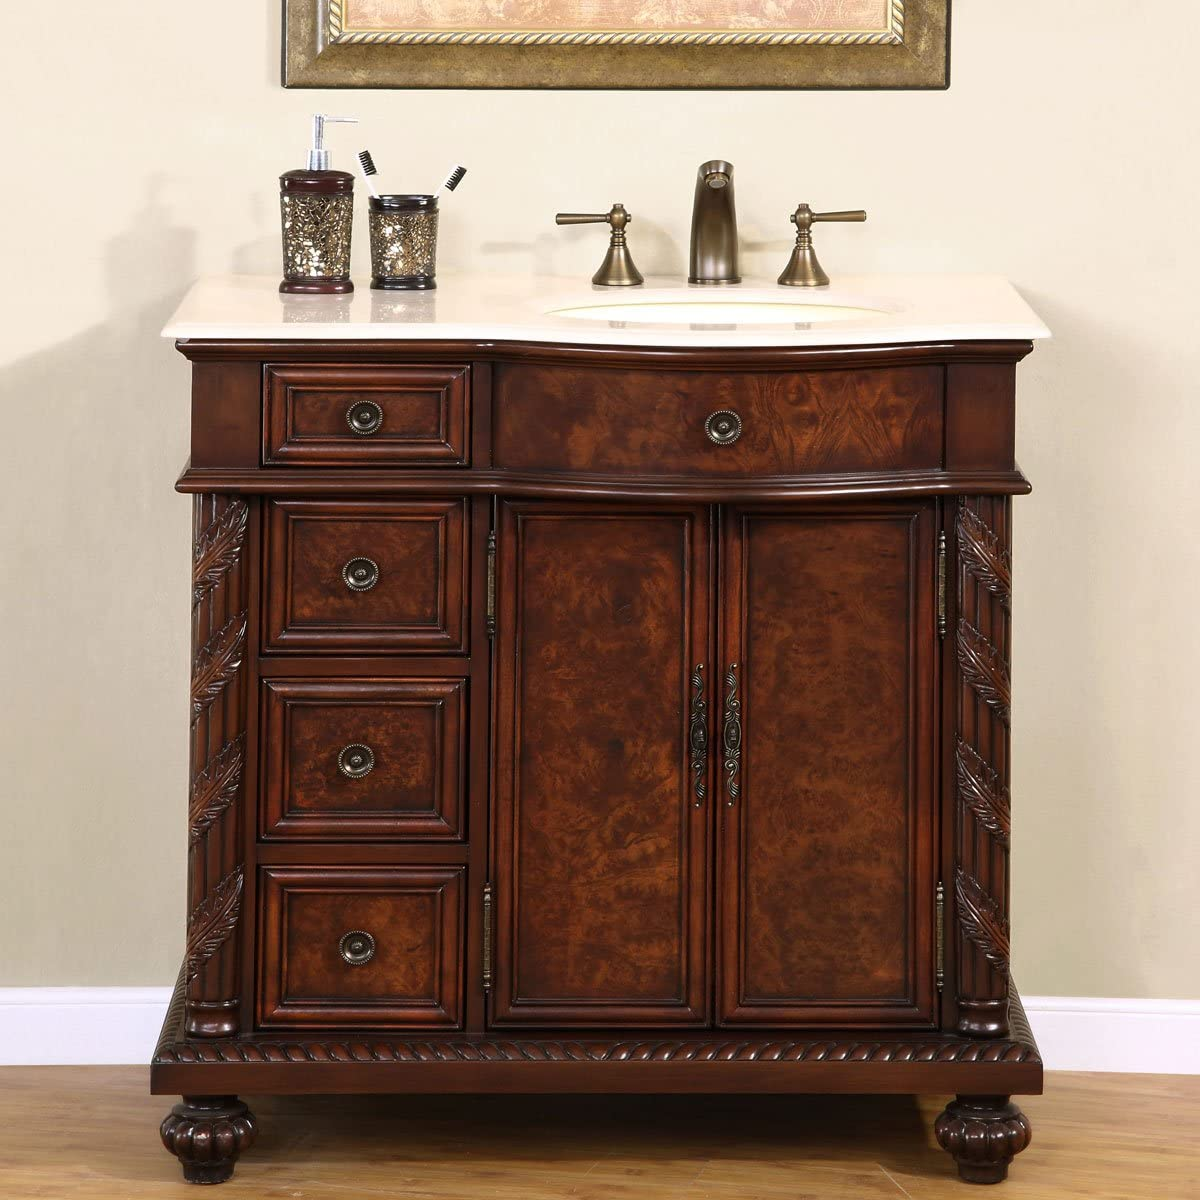 Silkroad Exclusive Marble Top Single Off Center Sink Bathroom Vanity with Cabinet, 36 , Medium Wood